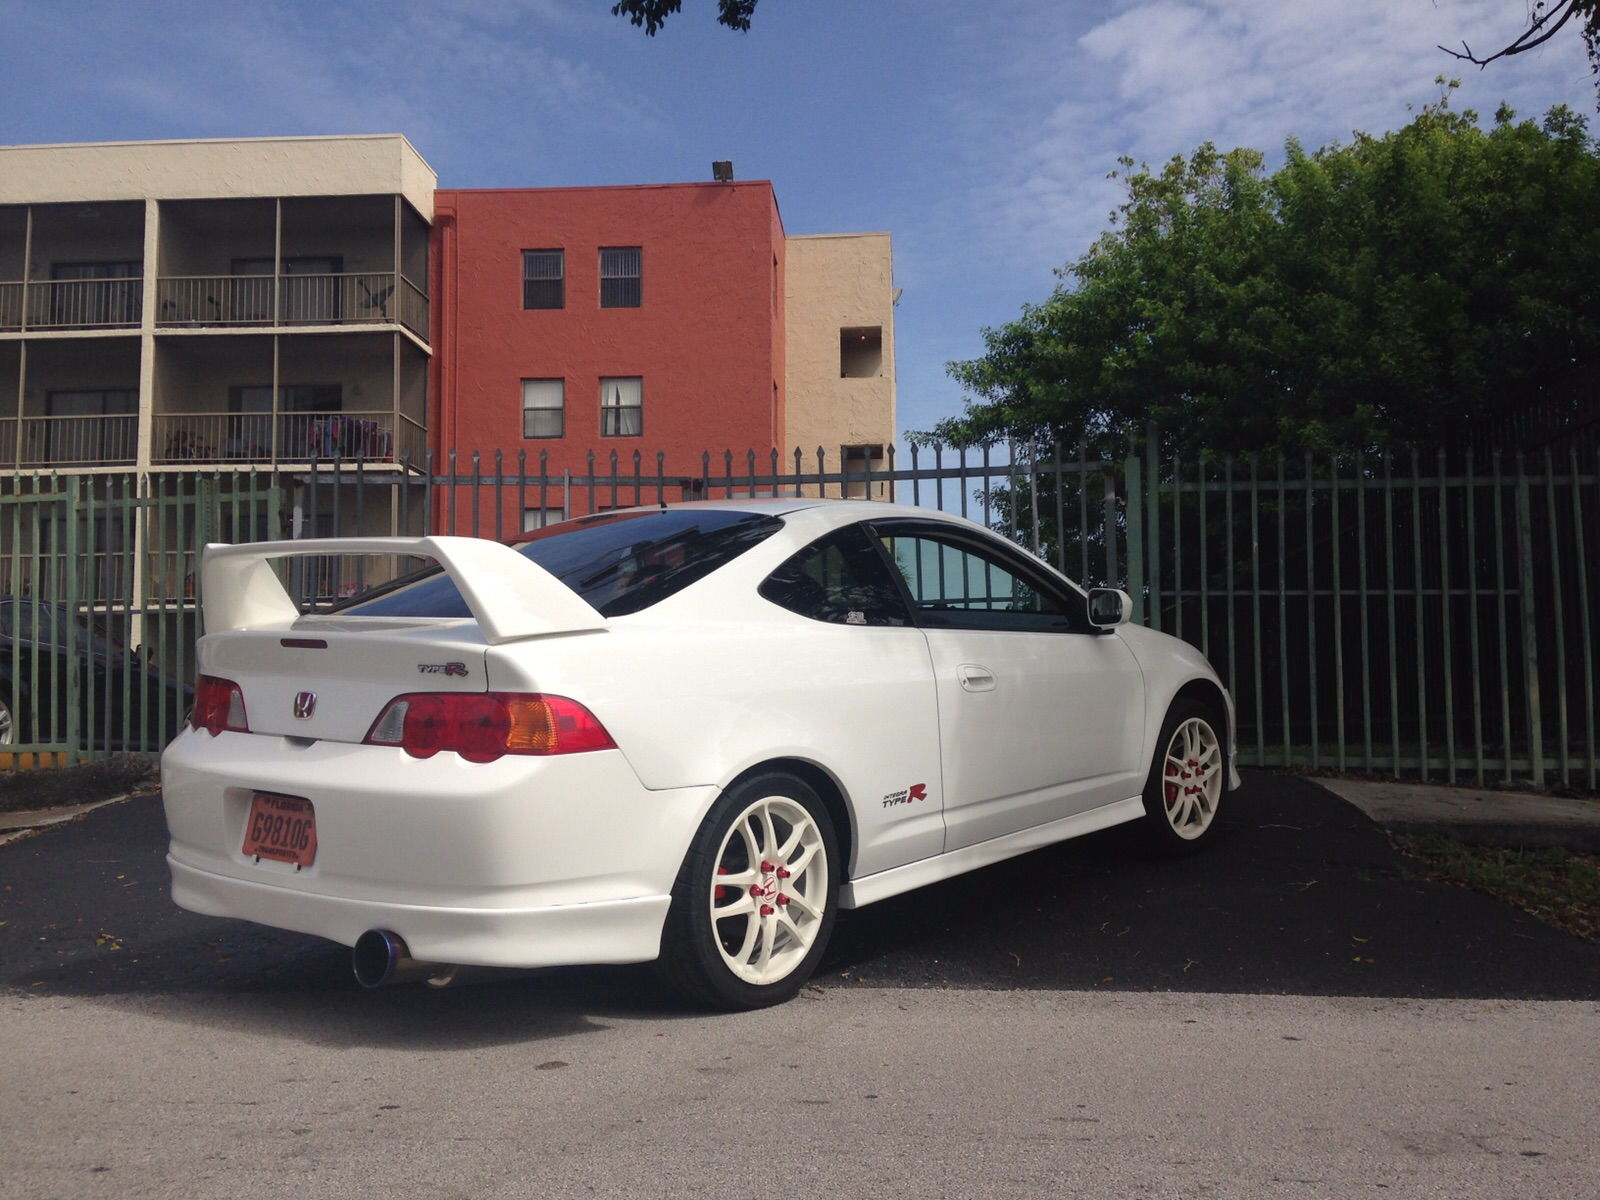 fl rsx type r conversion 14 000 soflo honda tech honda forum discussion. Black Bedroom Furniture Sets. Home Design Ideas